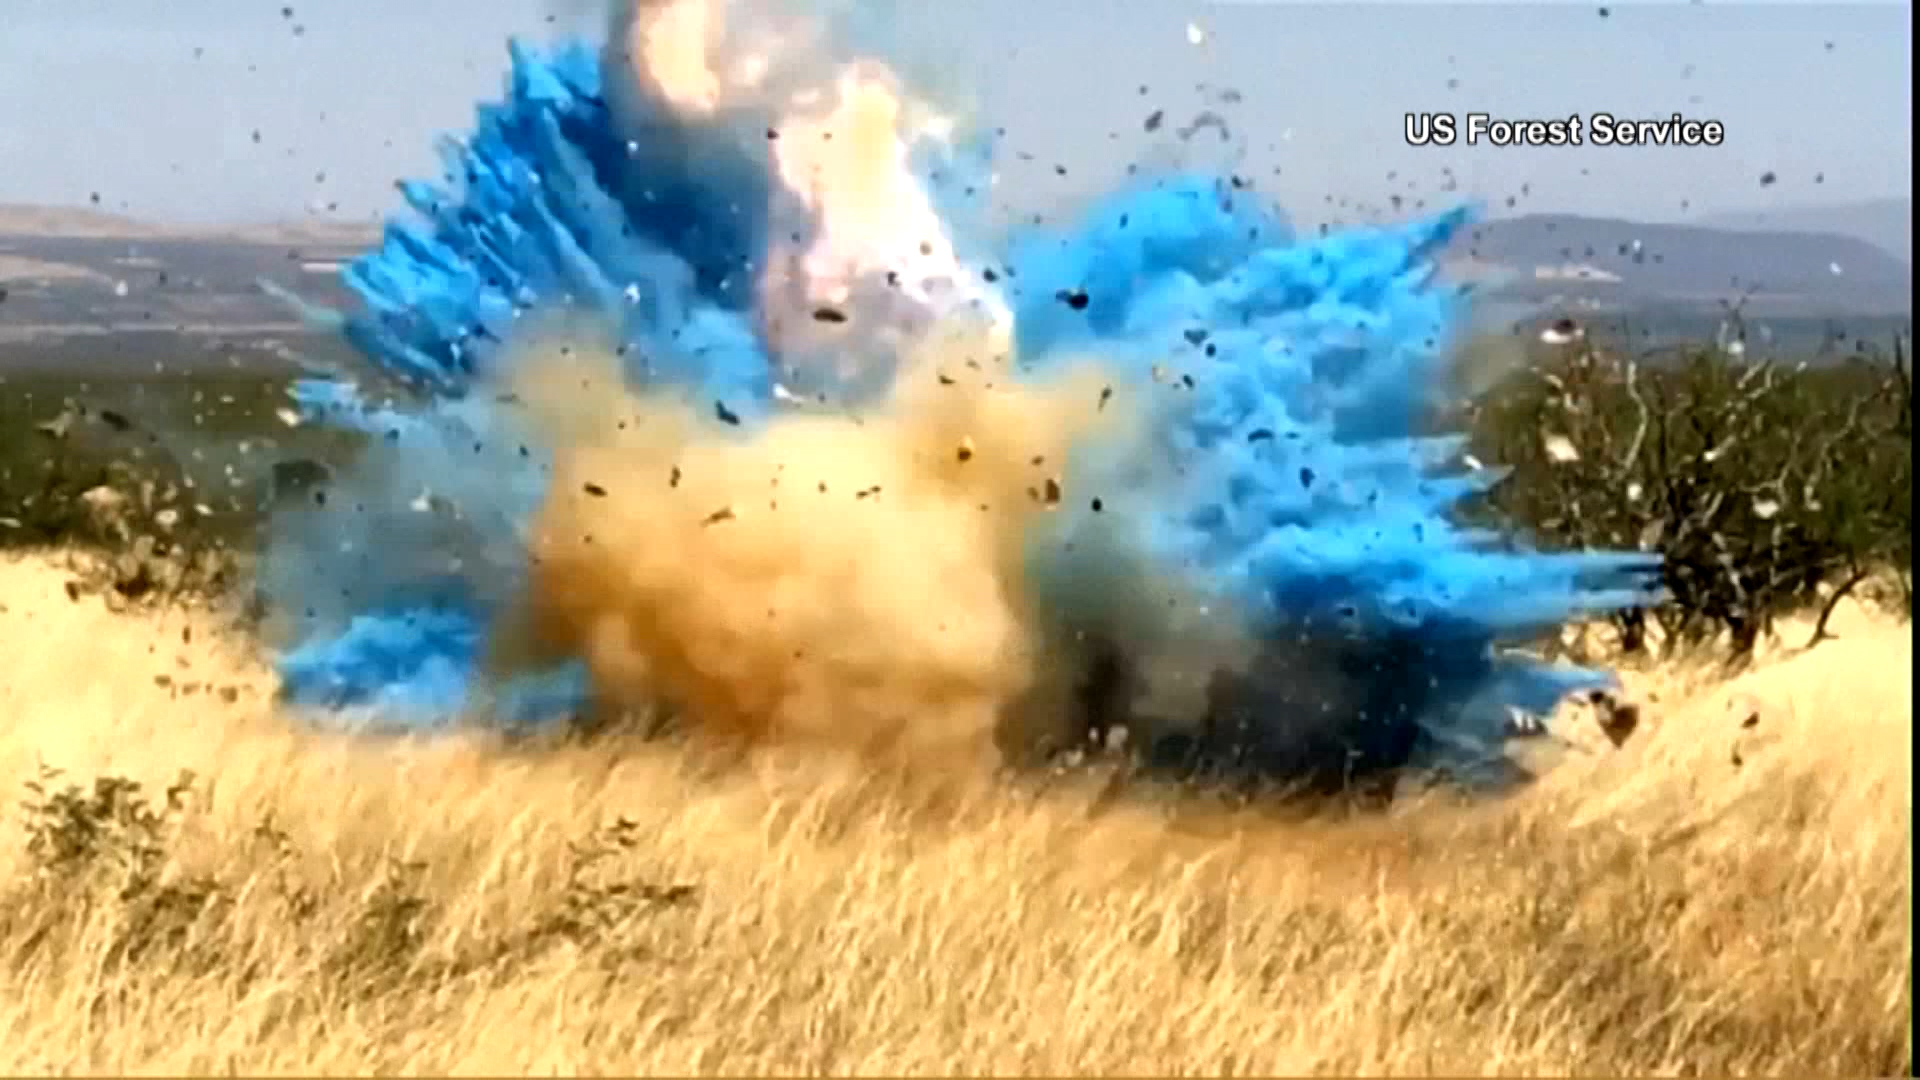 Video shows moment when gender-reveal bomb sparked $8M Sawmill Fire